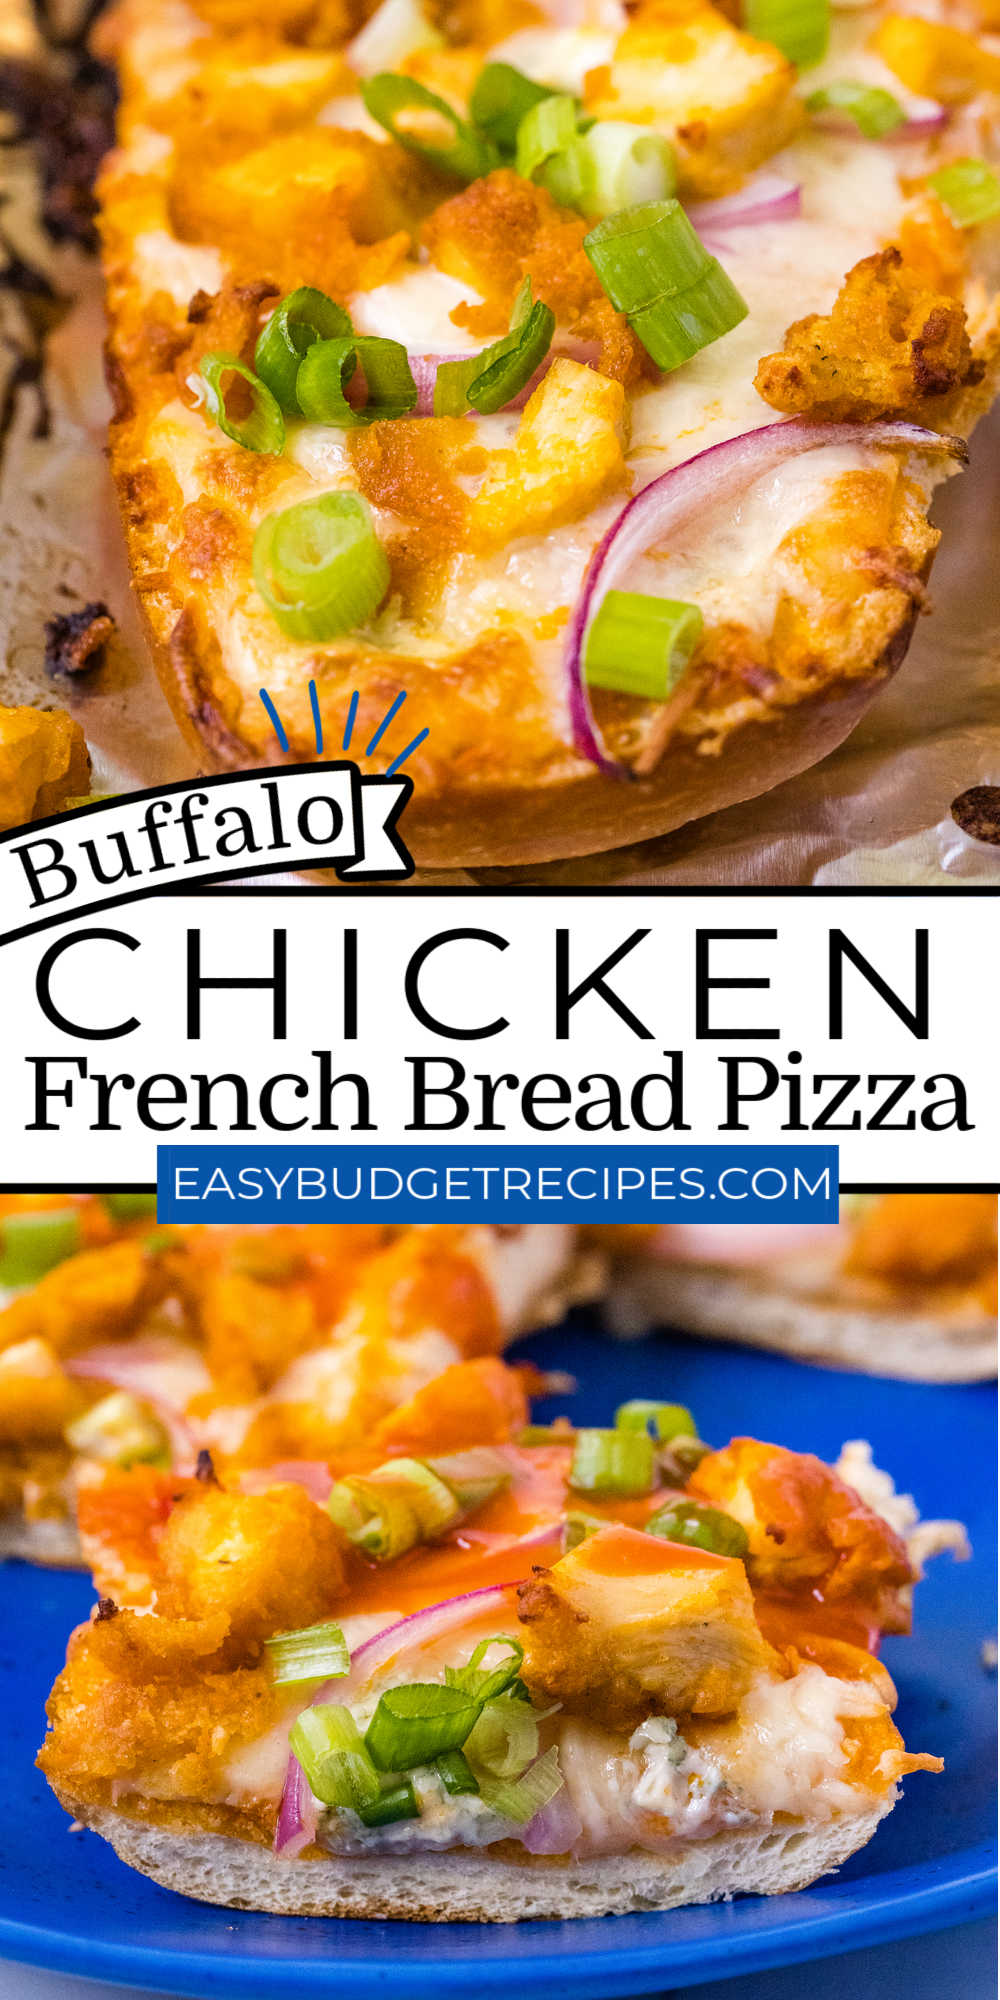 This Buffalo Chicken French Bread Pizza is an easy weeknight meal that is every bit as delicious as it is easy to prepare. It's layered with the flavors of everyone's favorite Buffalo chicken wings. via @easybudgetrecipes